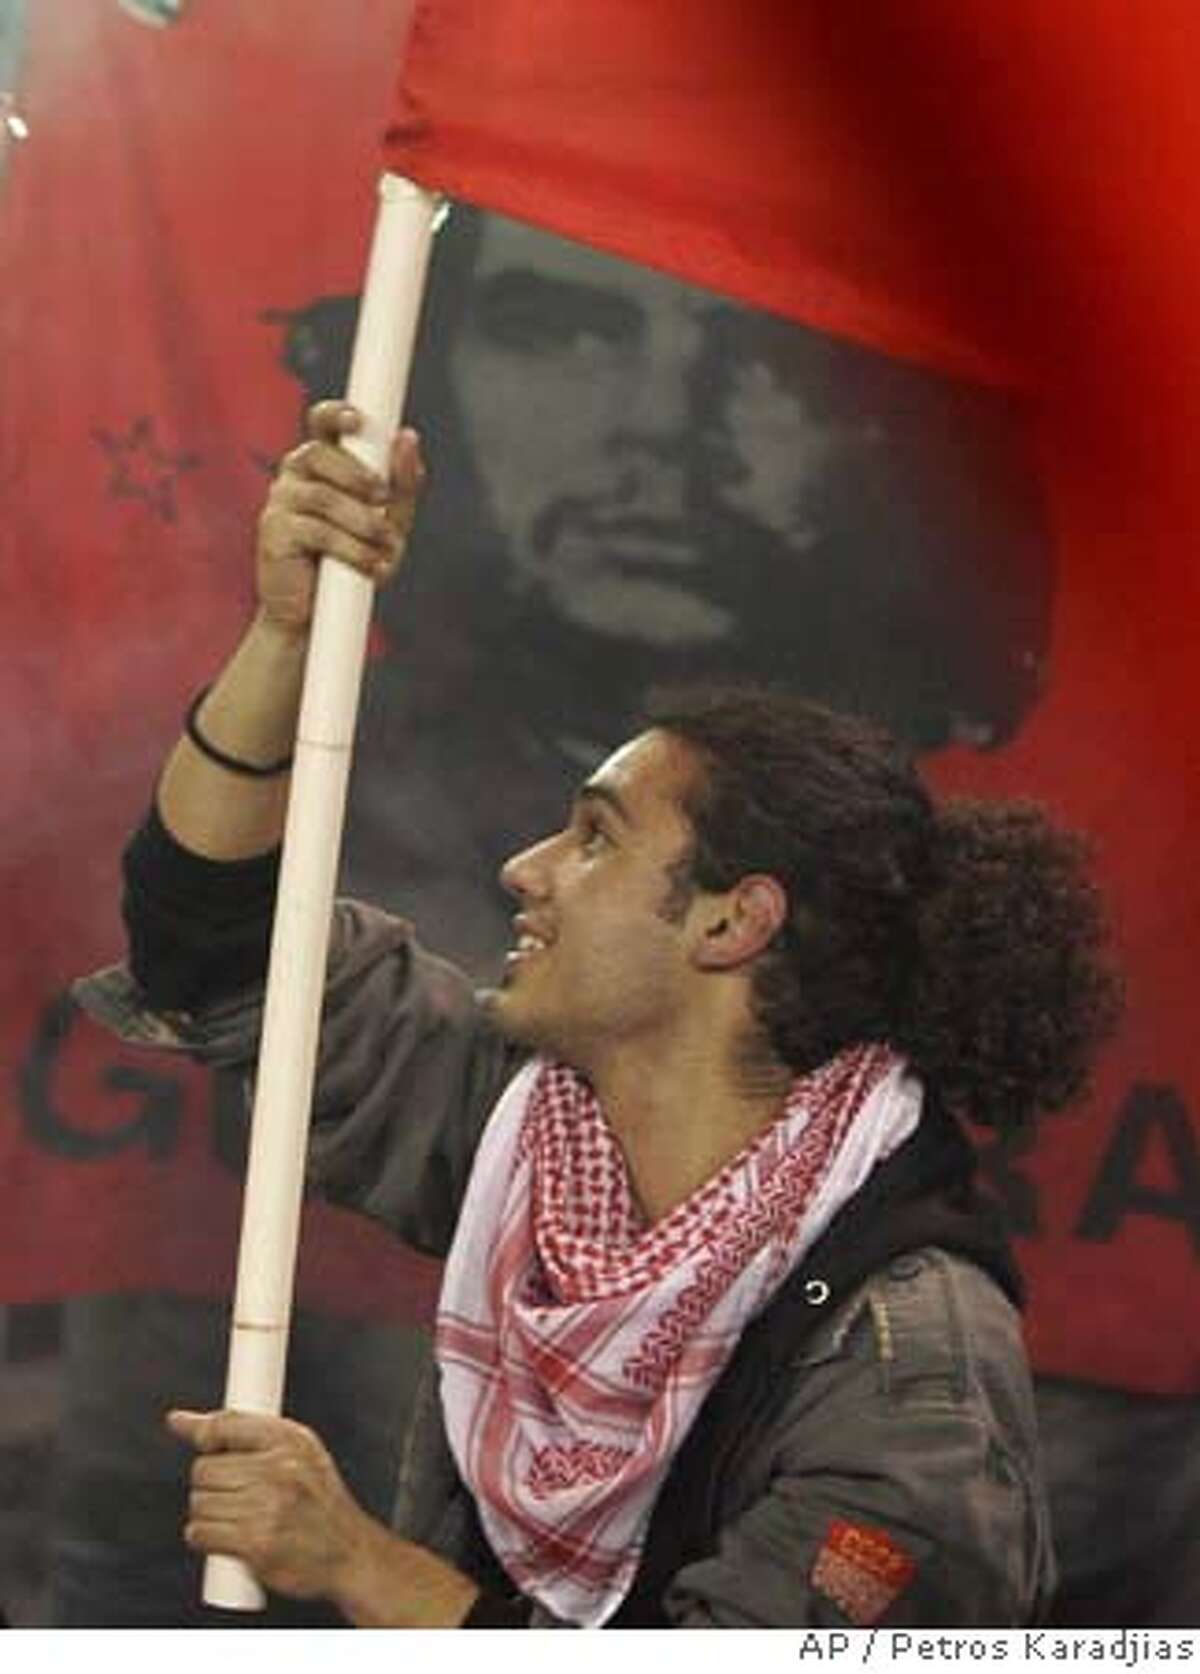 A Supporter of Communist President-elect Dimitris Christofias waves a flag in front of a Che Guevara flag during a victory rally at Eleftheria Stadium in Makedonitissa, Cyprus, Sunday, Feb. 24, 2008. Christofias won with 53.36 of the vote, against 46.64 for Conservative rival Ioannis Kasoulides, final results showed. (AP Photo/Petros Karadjias)